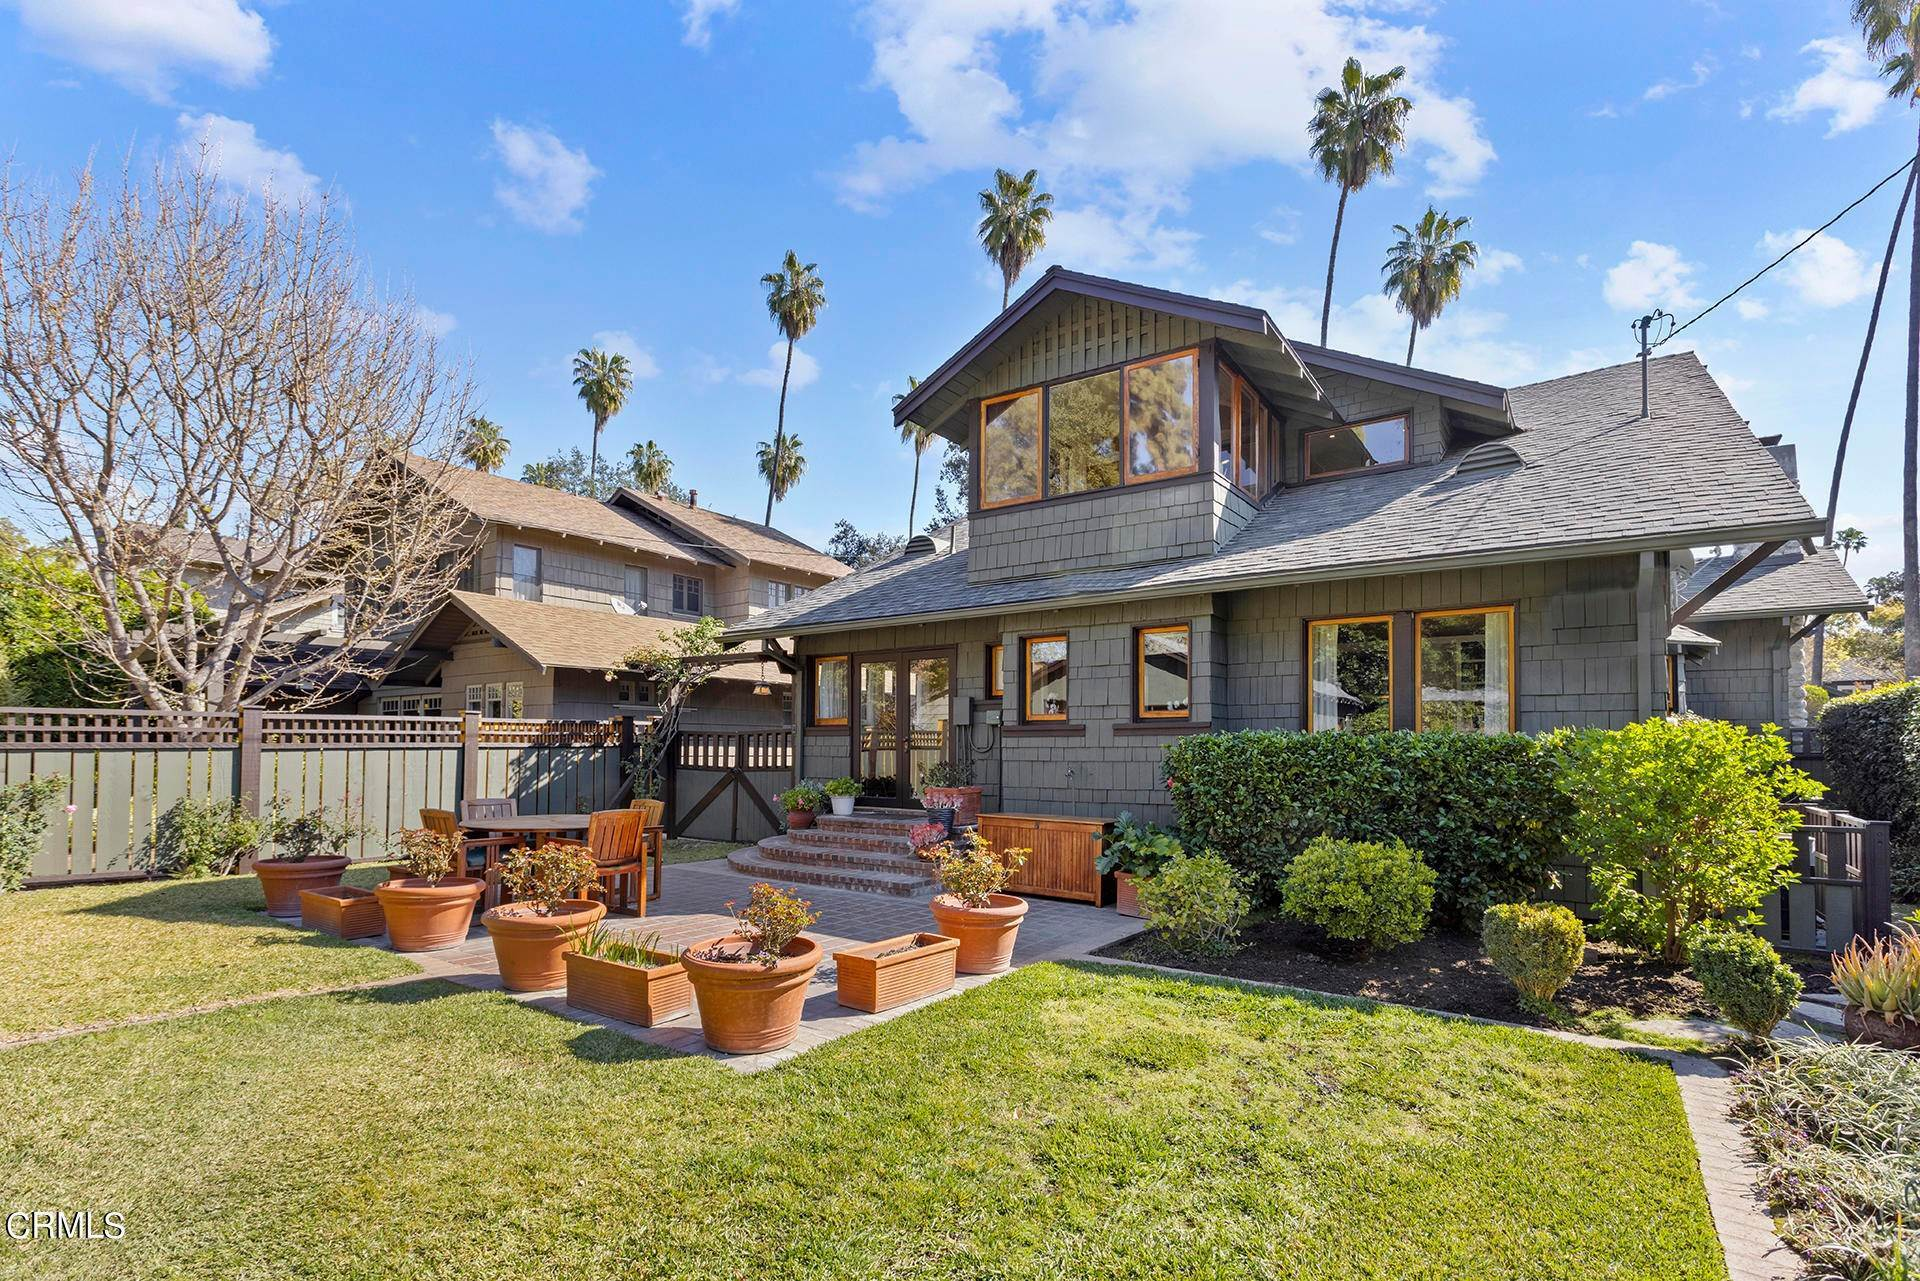 39. Single Family Homes for Sale at 1705 Fletcher Avenue South Pasadena, California 91030 United States